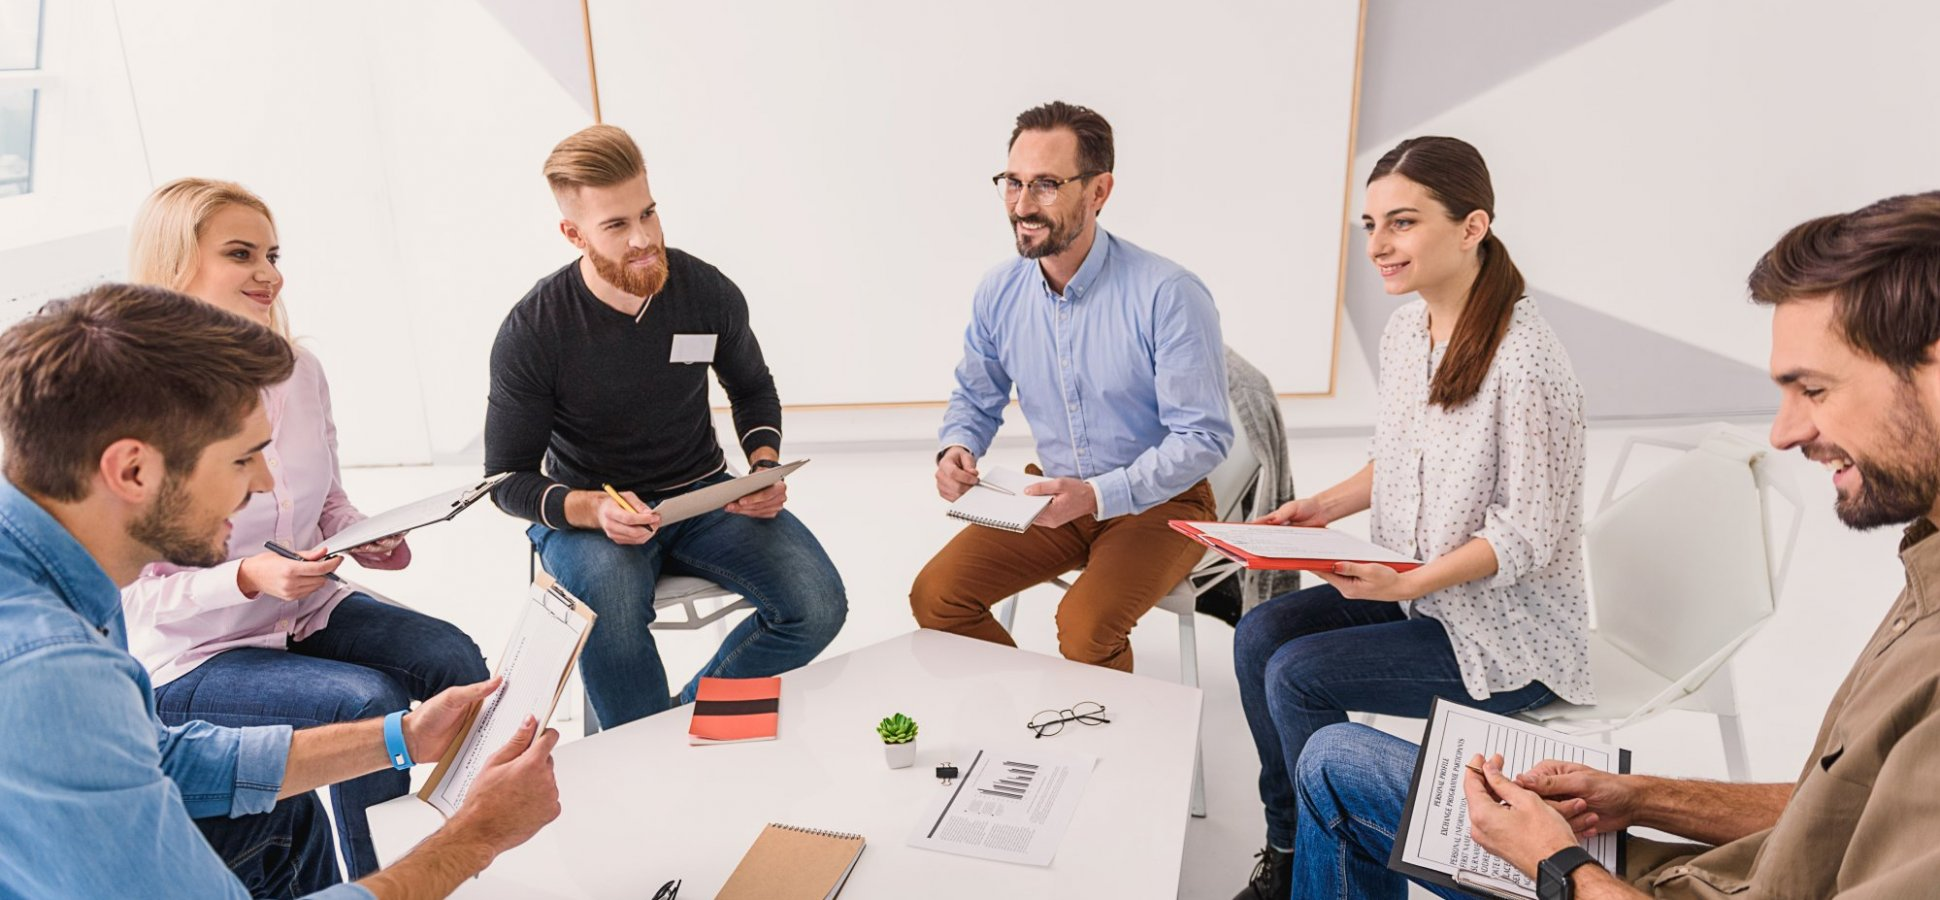 This 1 Job Interview Question Reveals if You Are a Good Team Player